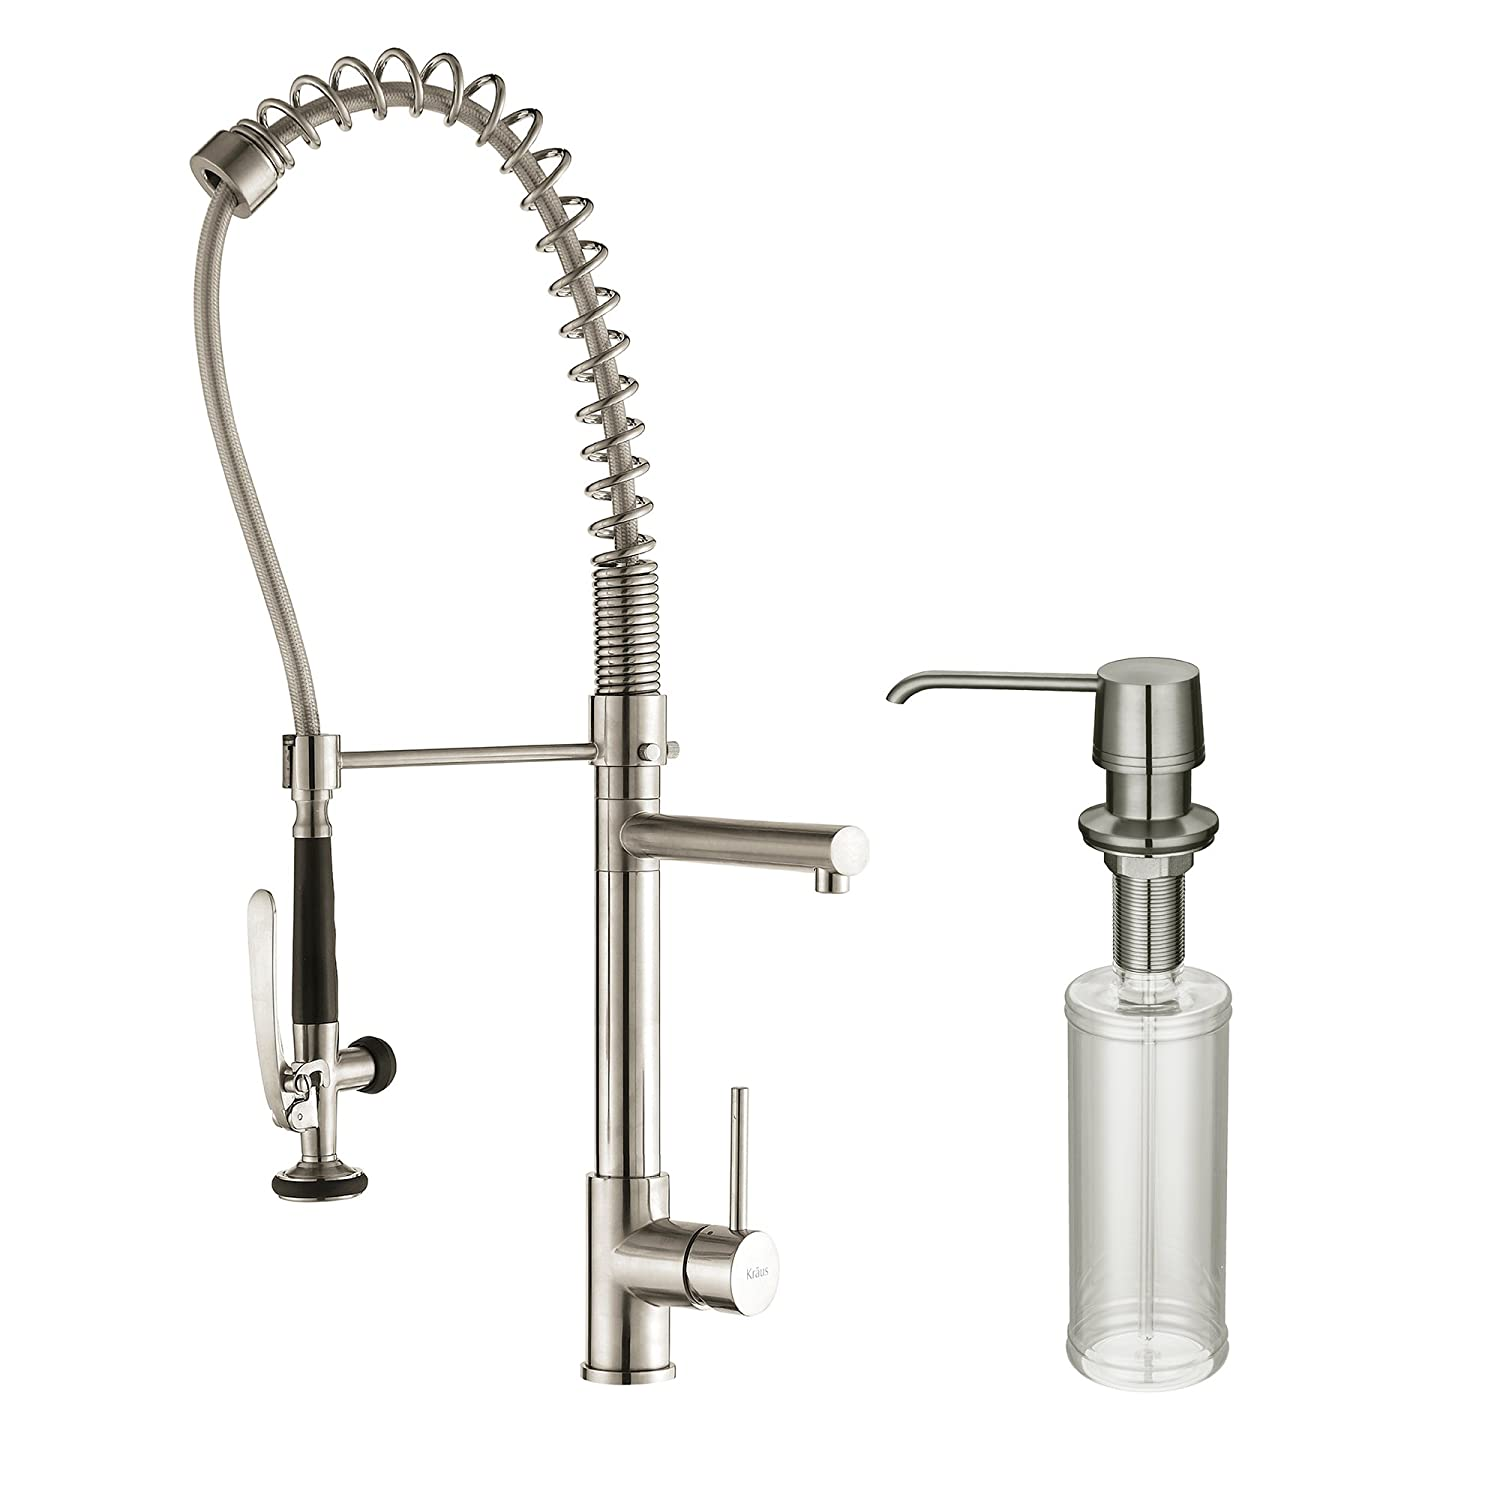 Kraus Single Handle Pull Down Kitchen Faucet Commercial Style Pre-rinse in Stainless Steel Finish and Soap Dispenser